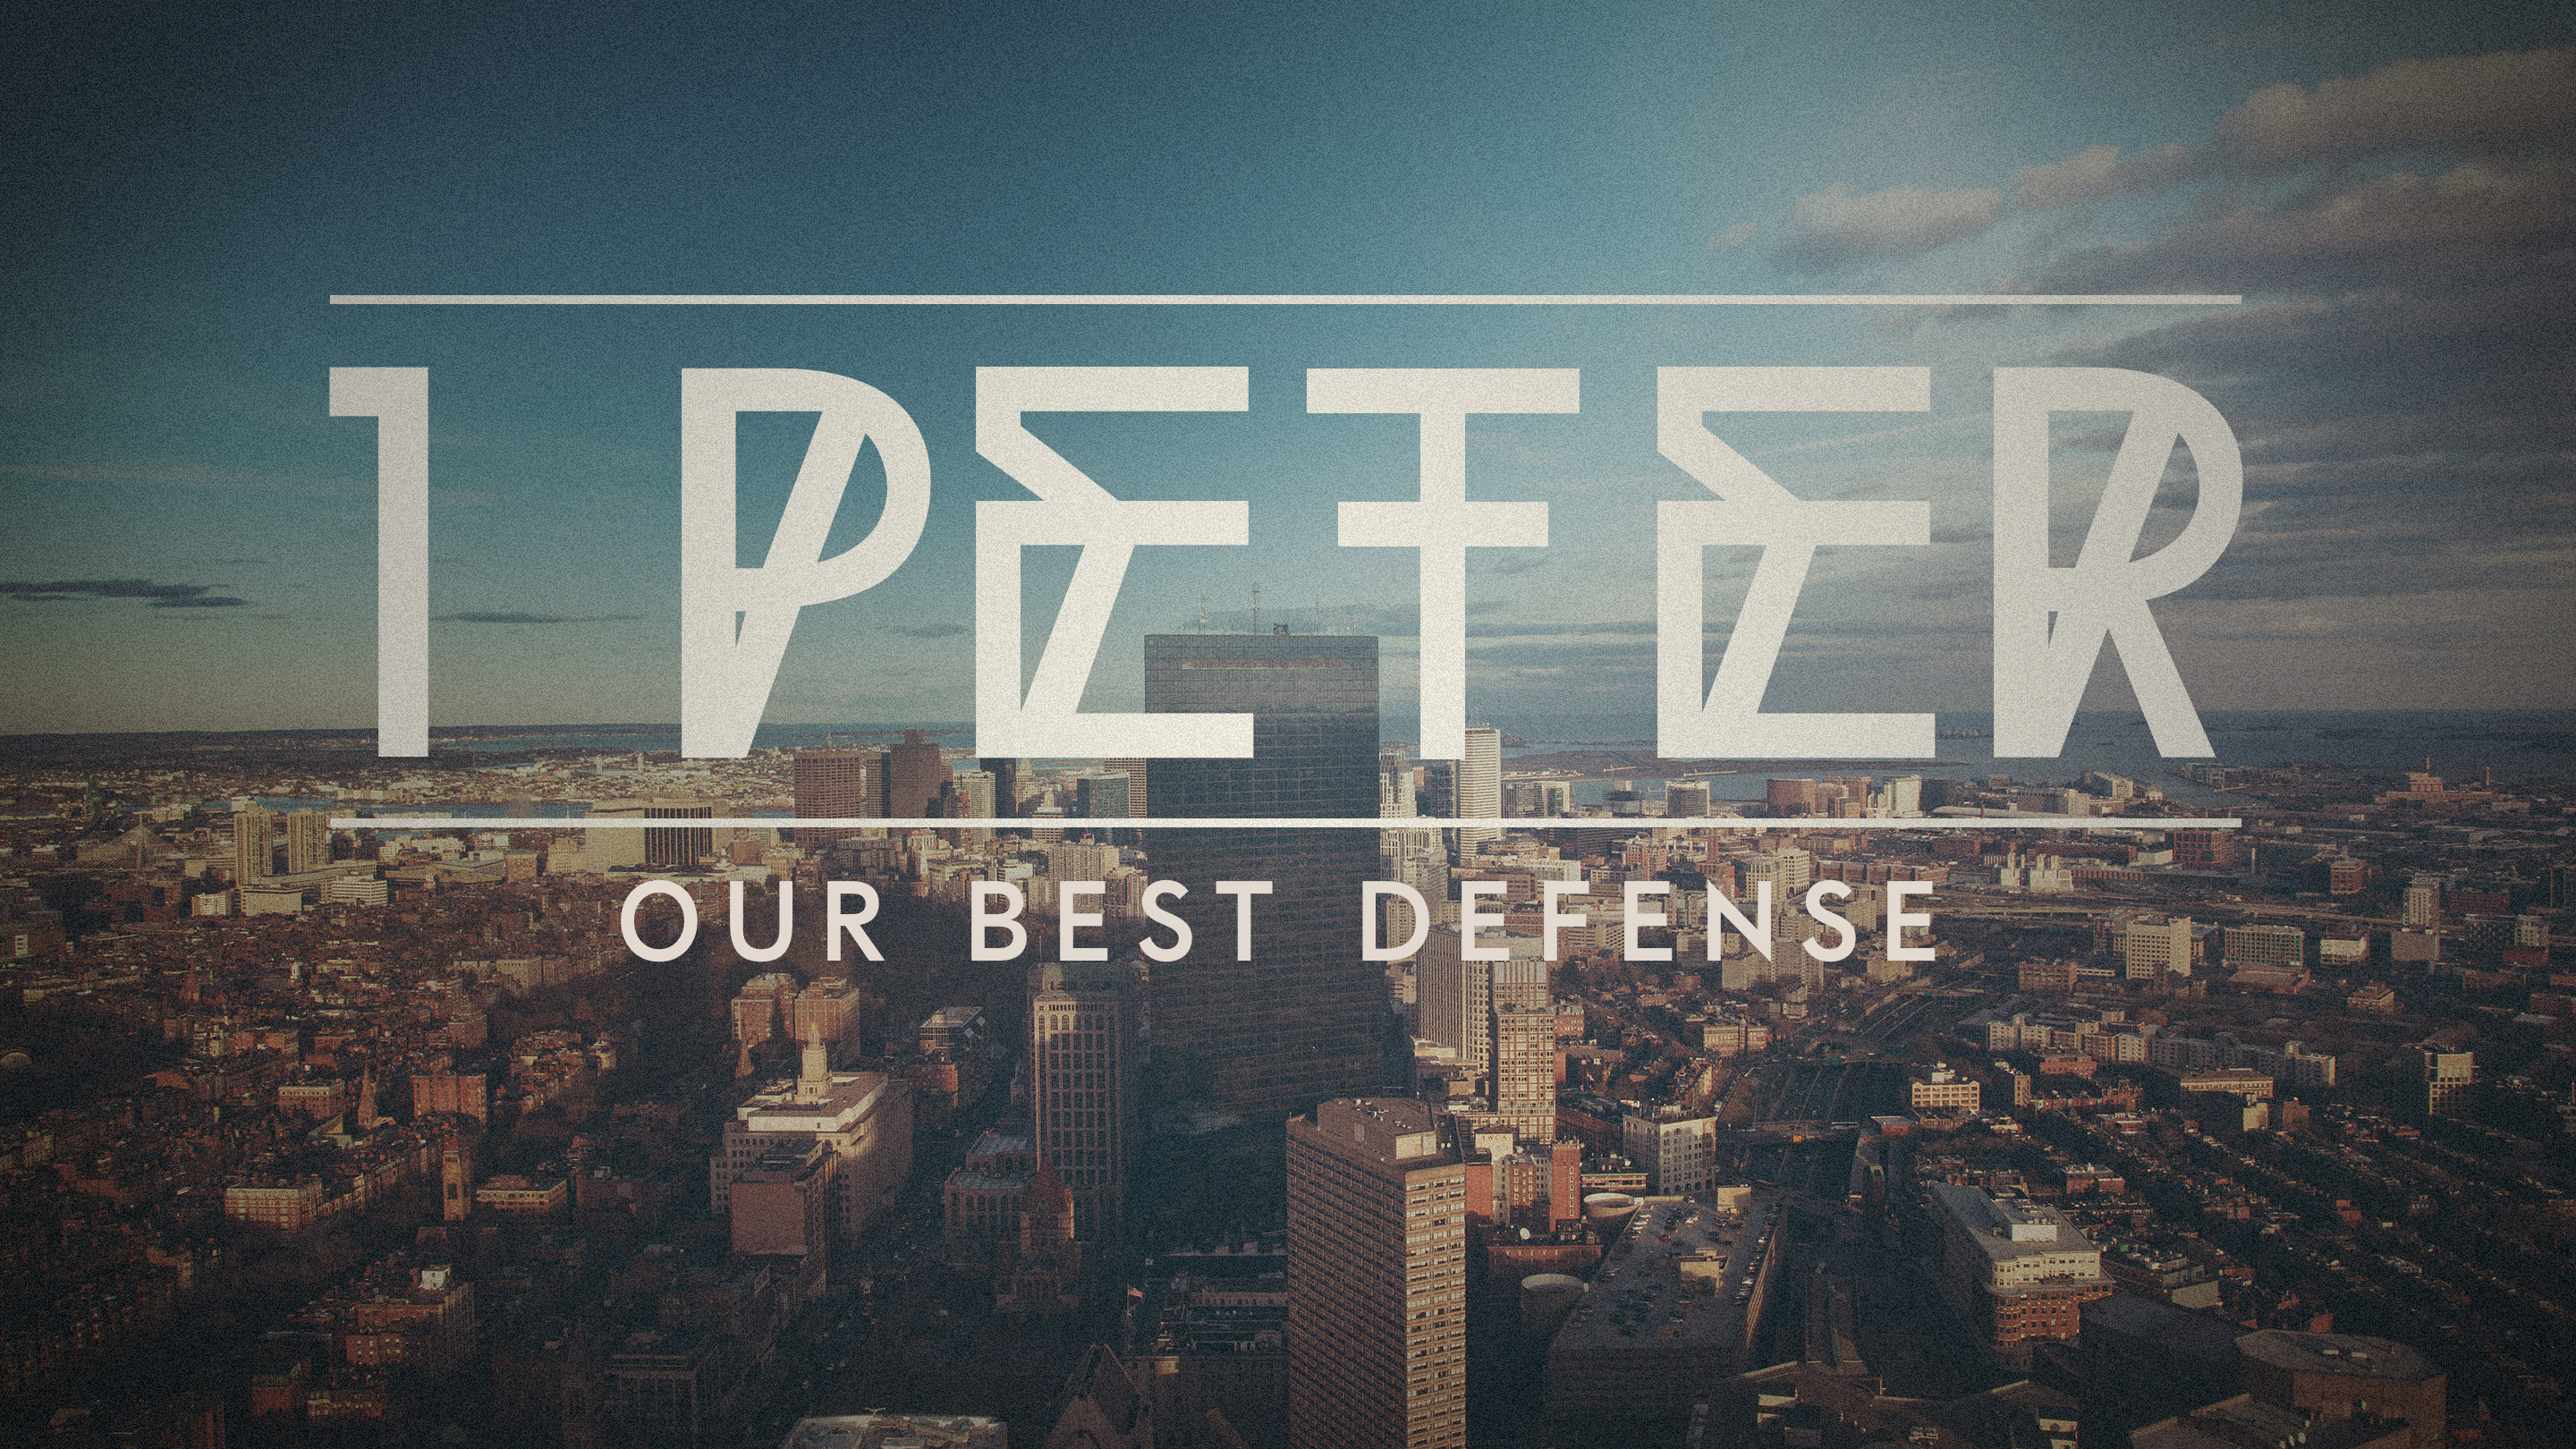 Our Best Defense